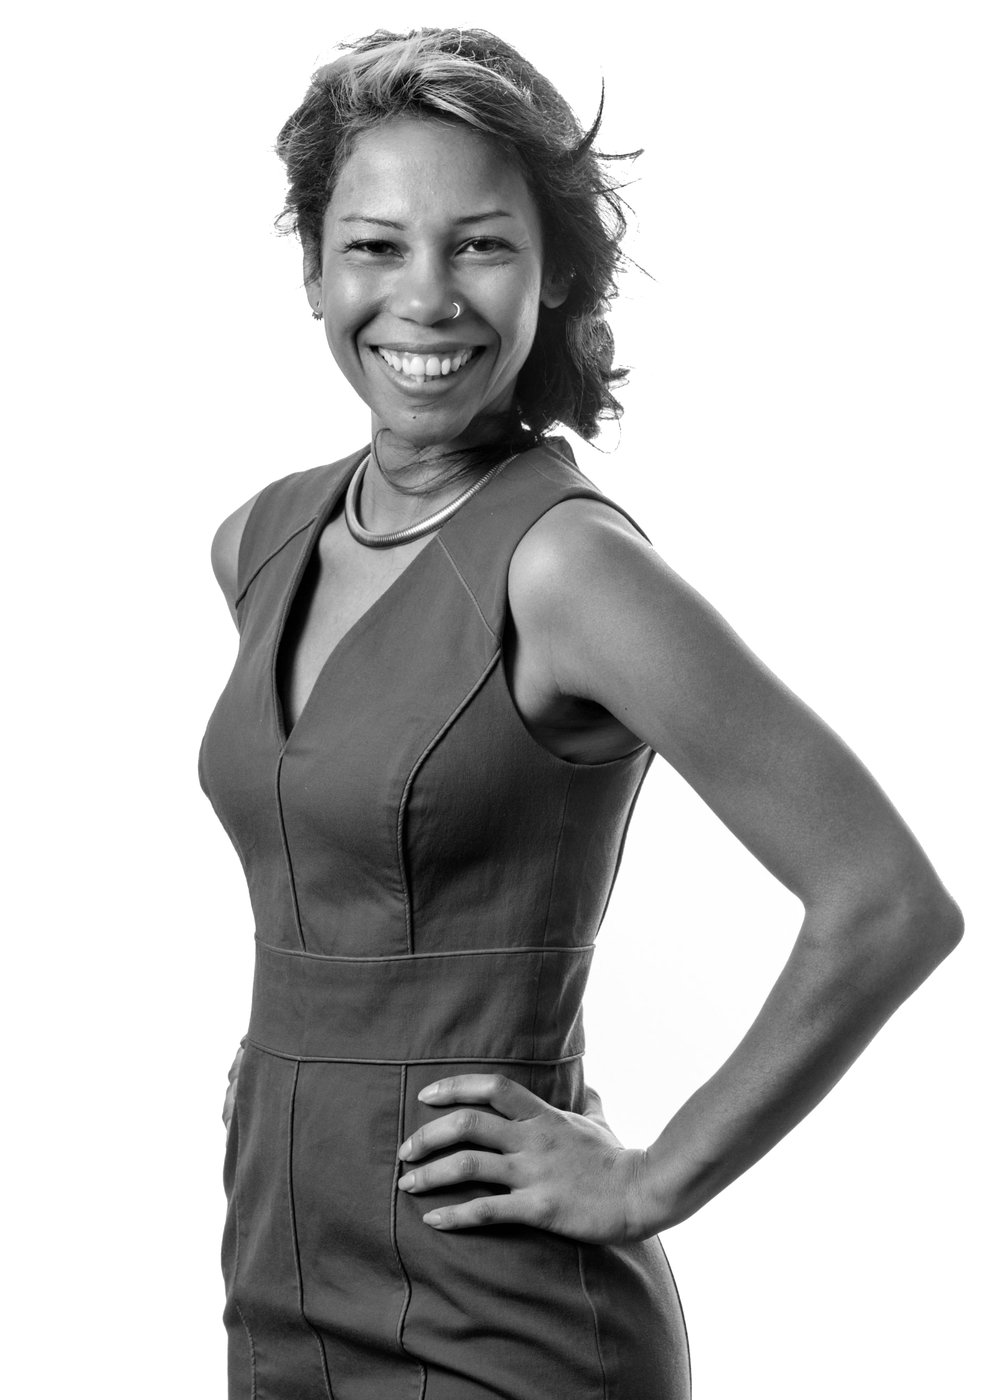 Yessica M Communications Manager Connect First